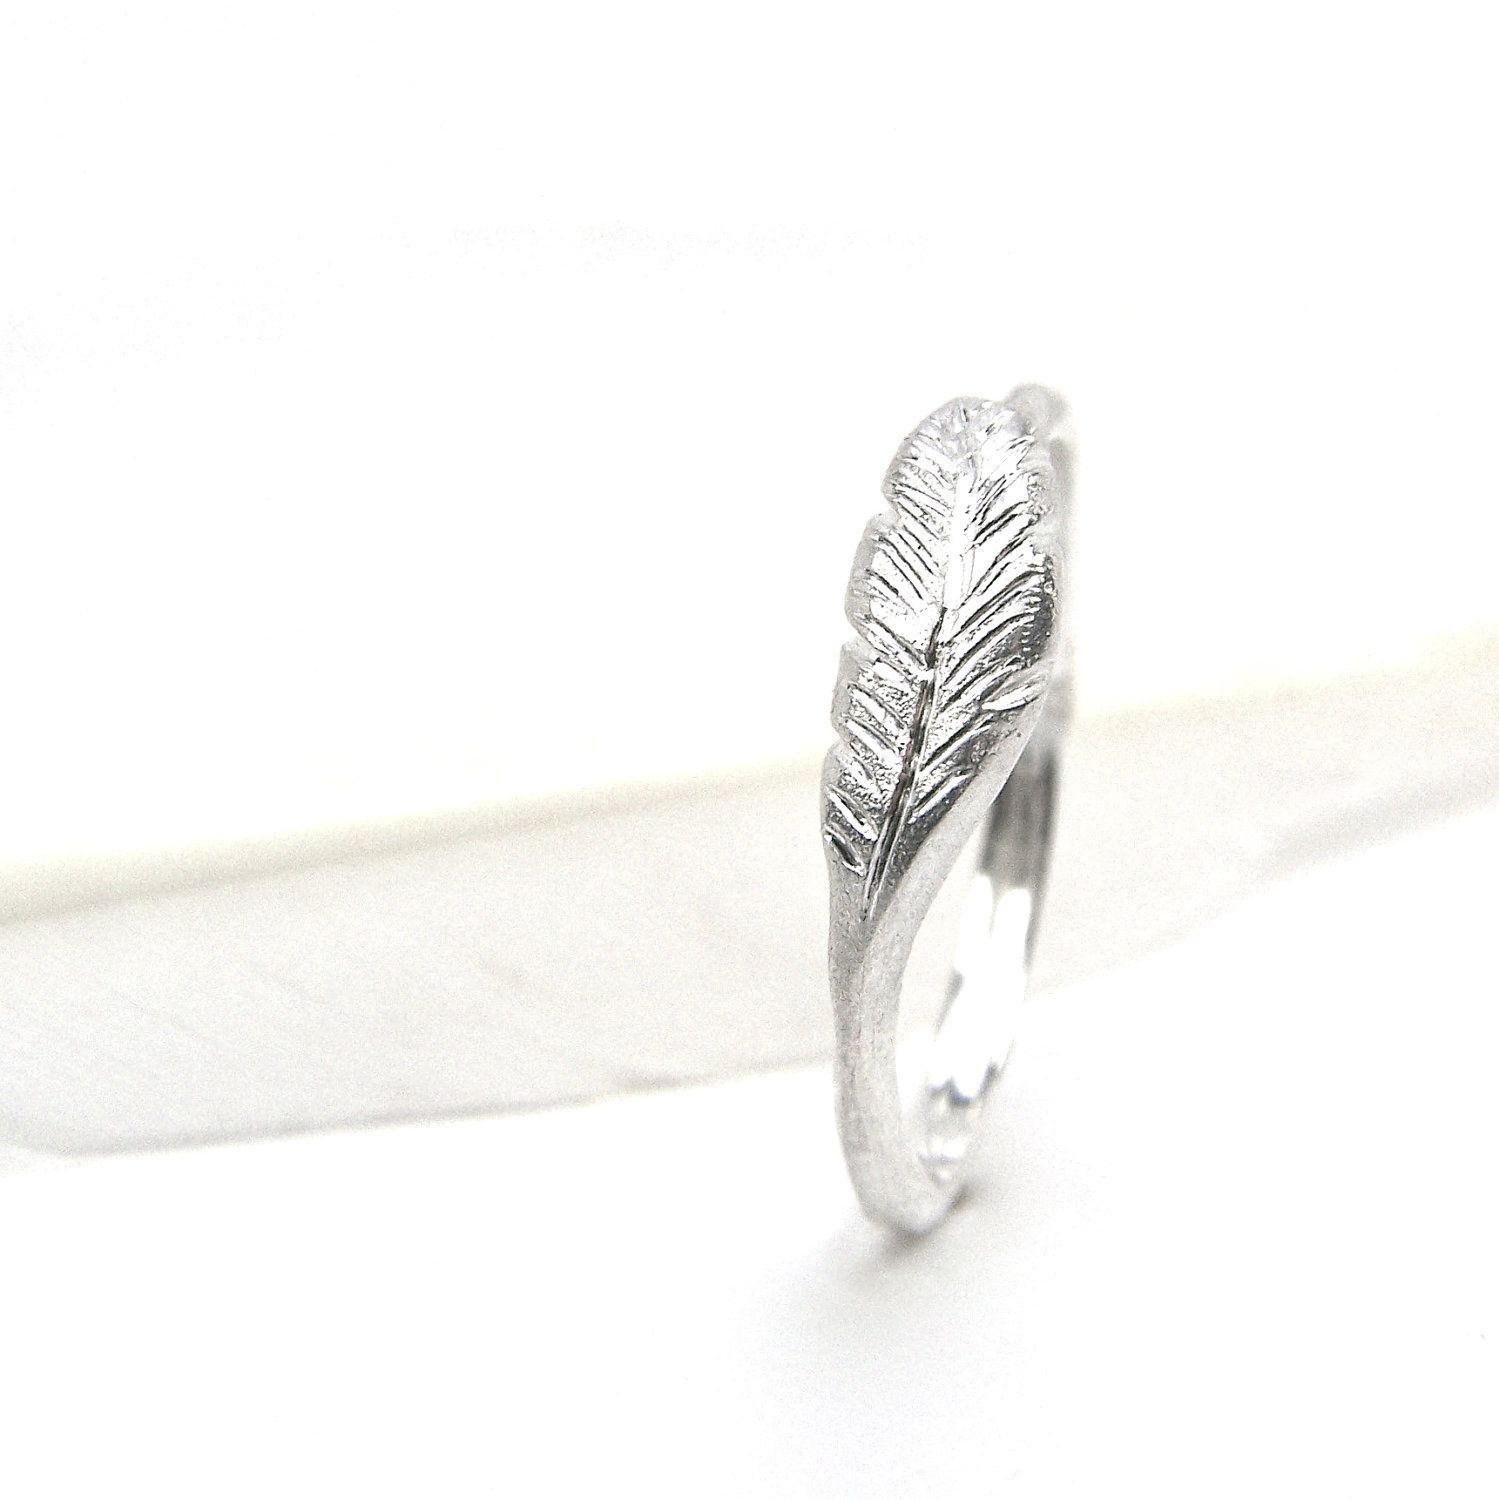 rings sterling fashion selling allergenic designer jewelry crown lover rust product diamond engagement couple feather non anti hot